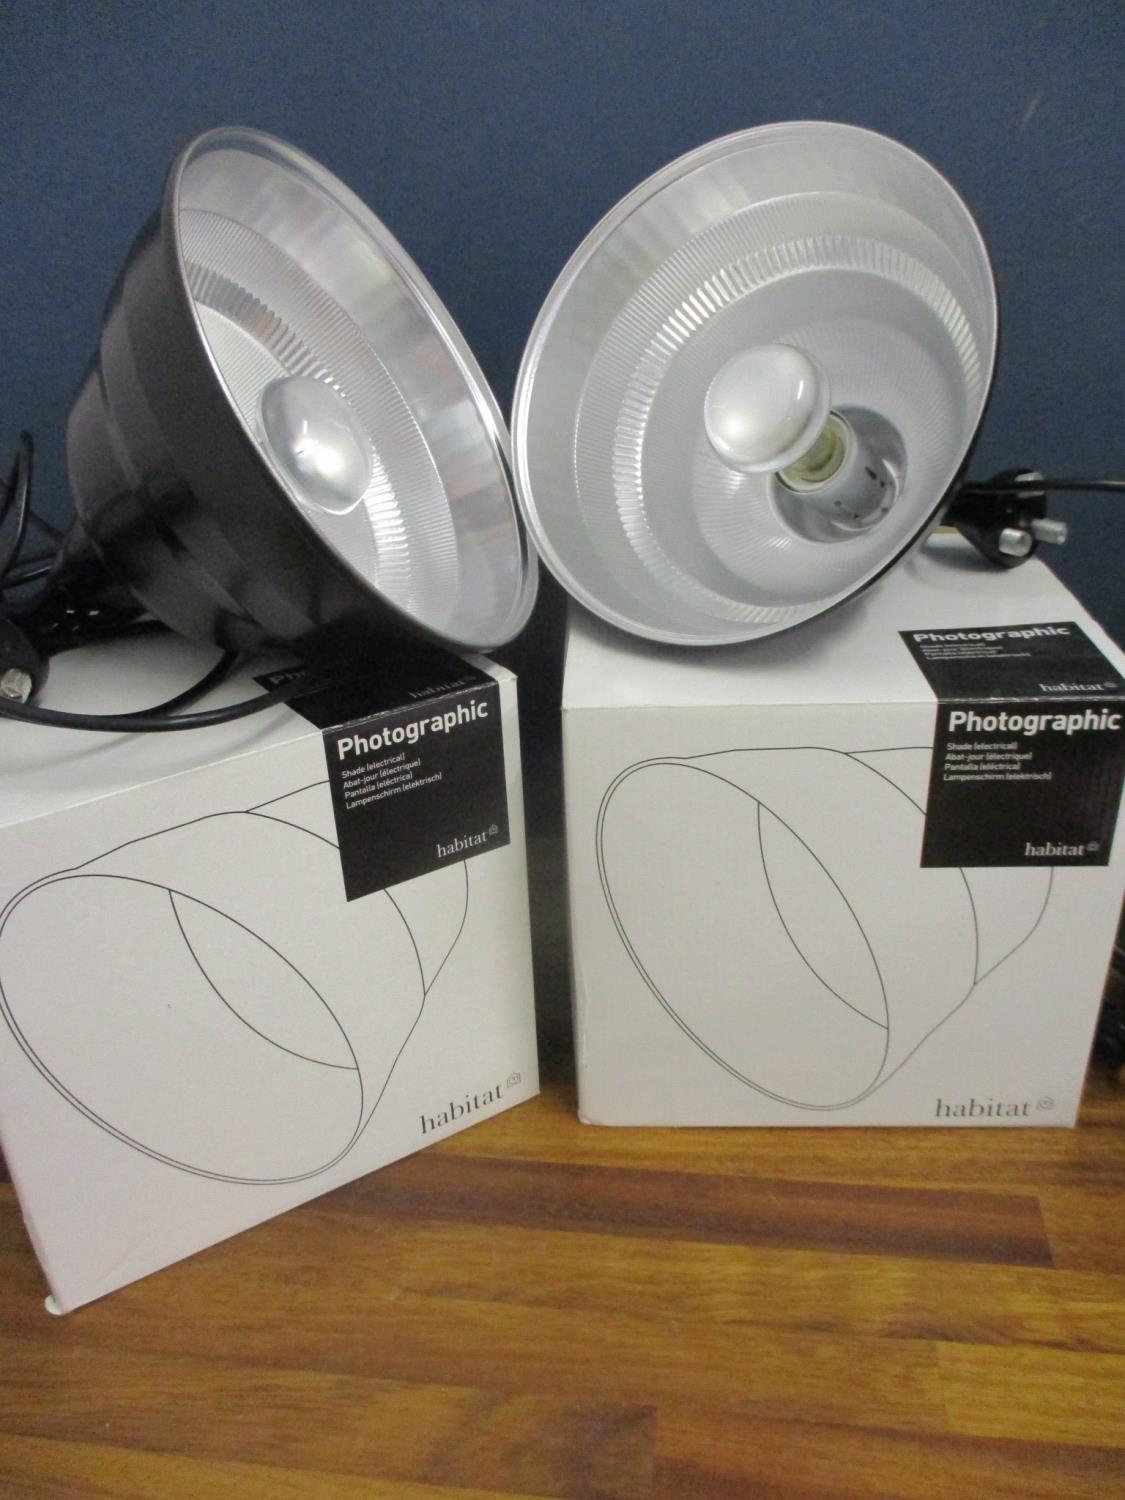 Lot 6 - A pair of Habitat, boxed photographic lights in black, together with an anglepoise lamp